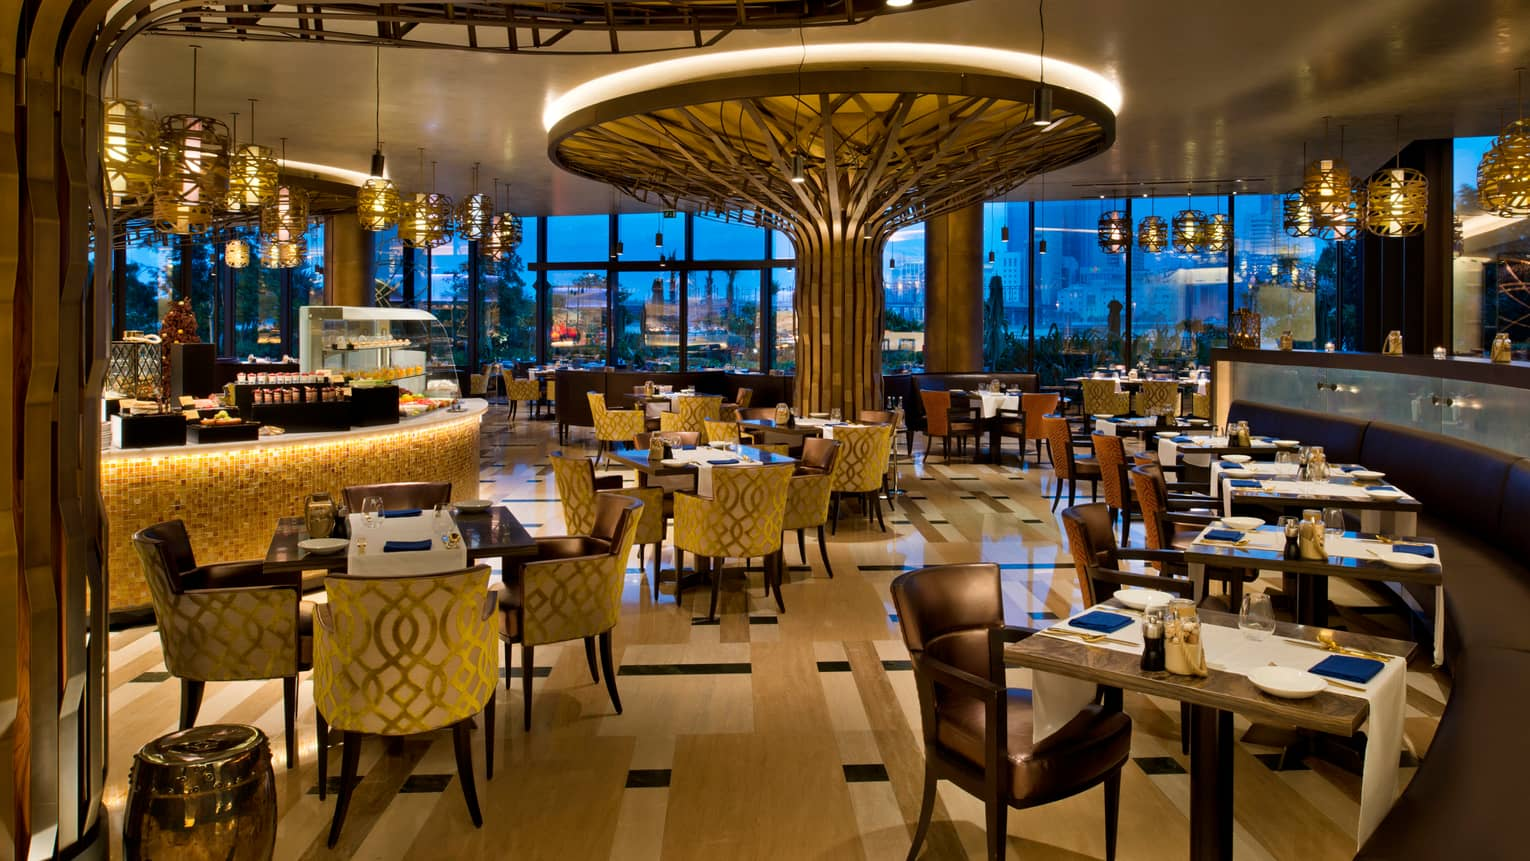 Bahrain Bay Kitchen dimly-lit dining room with gold velvet armchairs, tile bar, tall tree-shaped wood sculpture with light